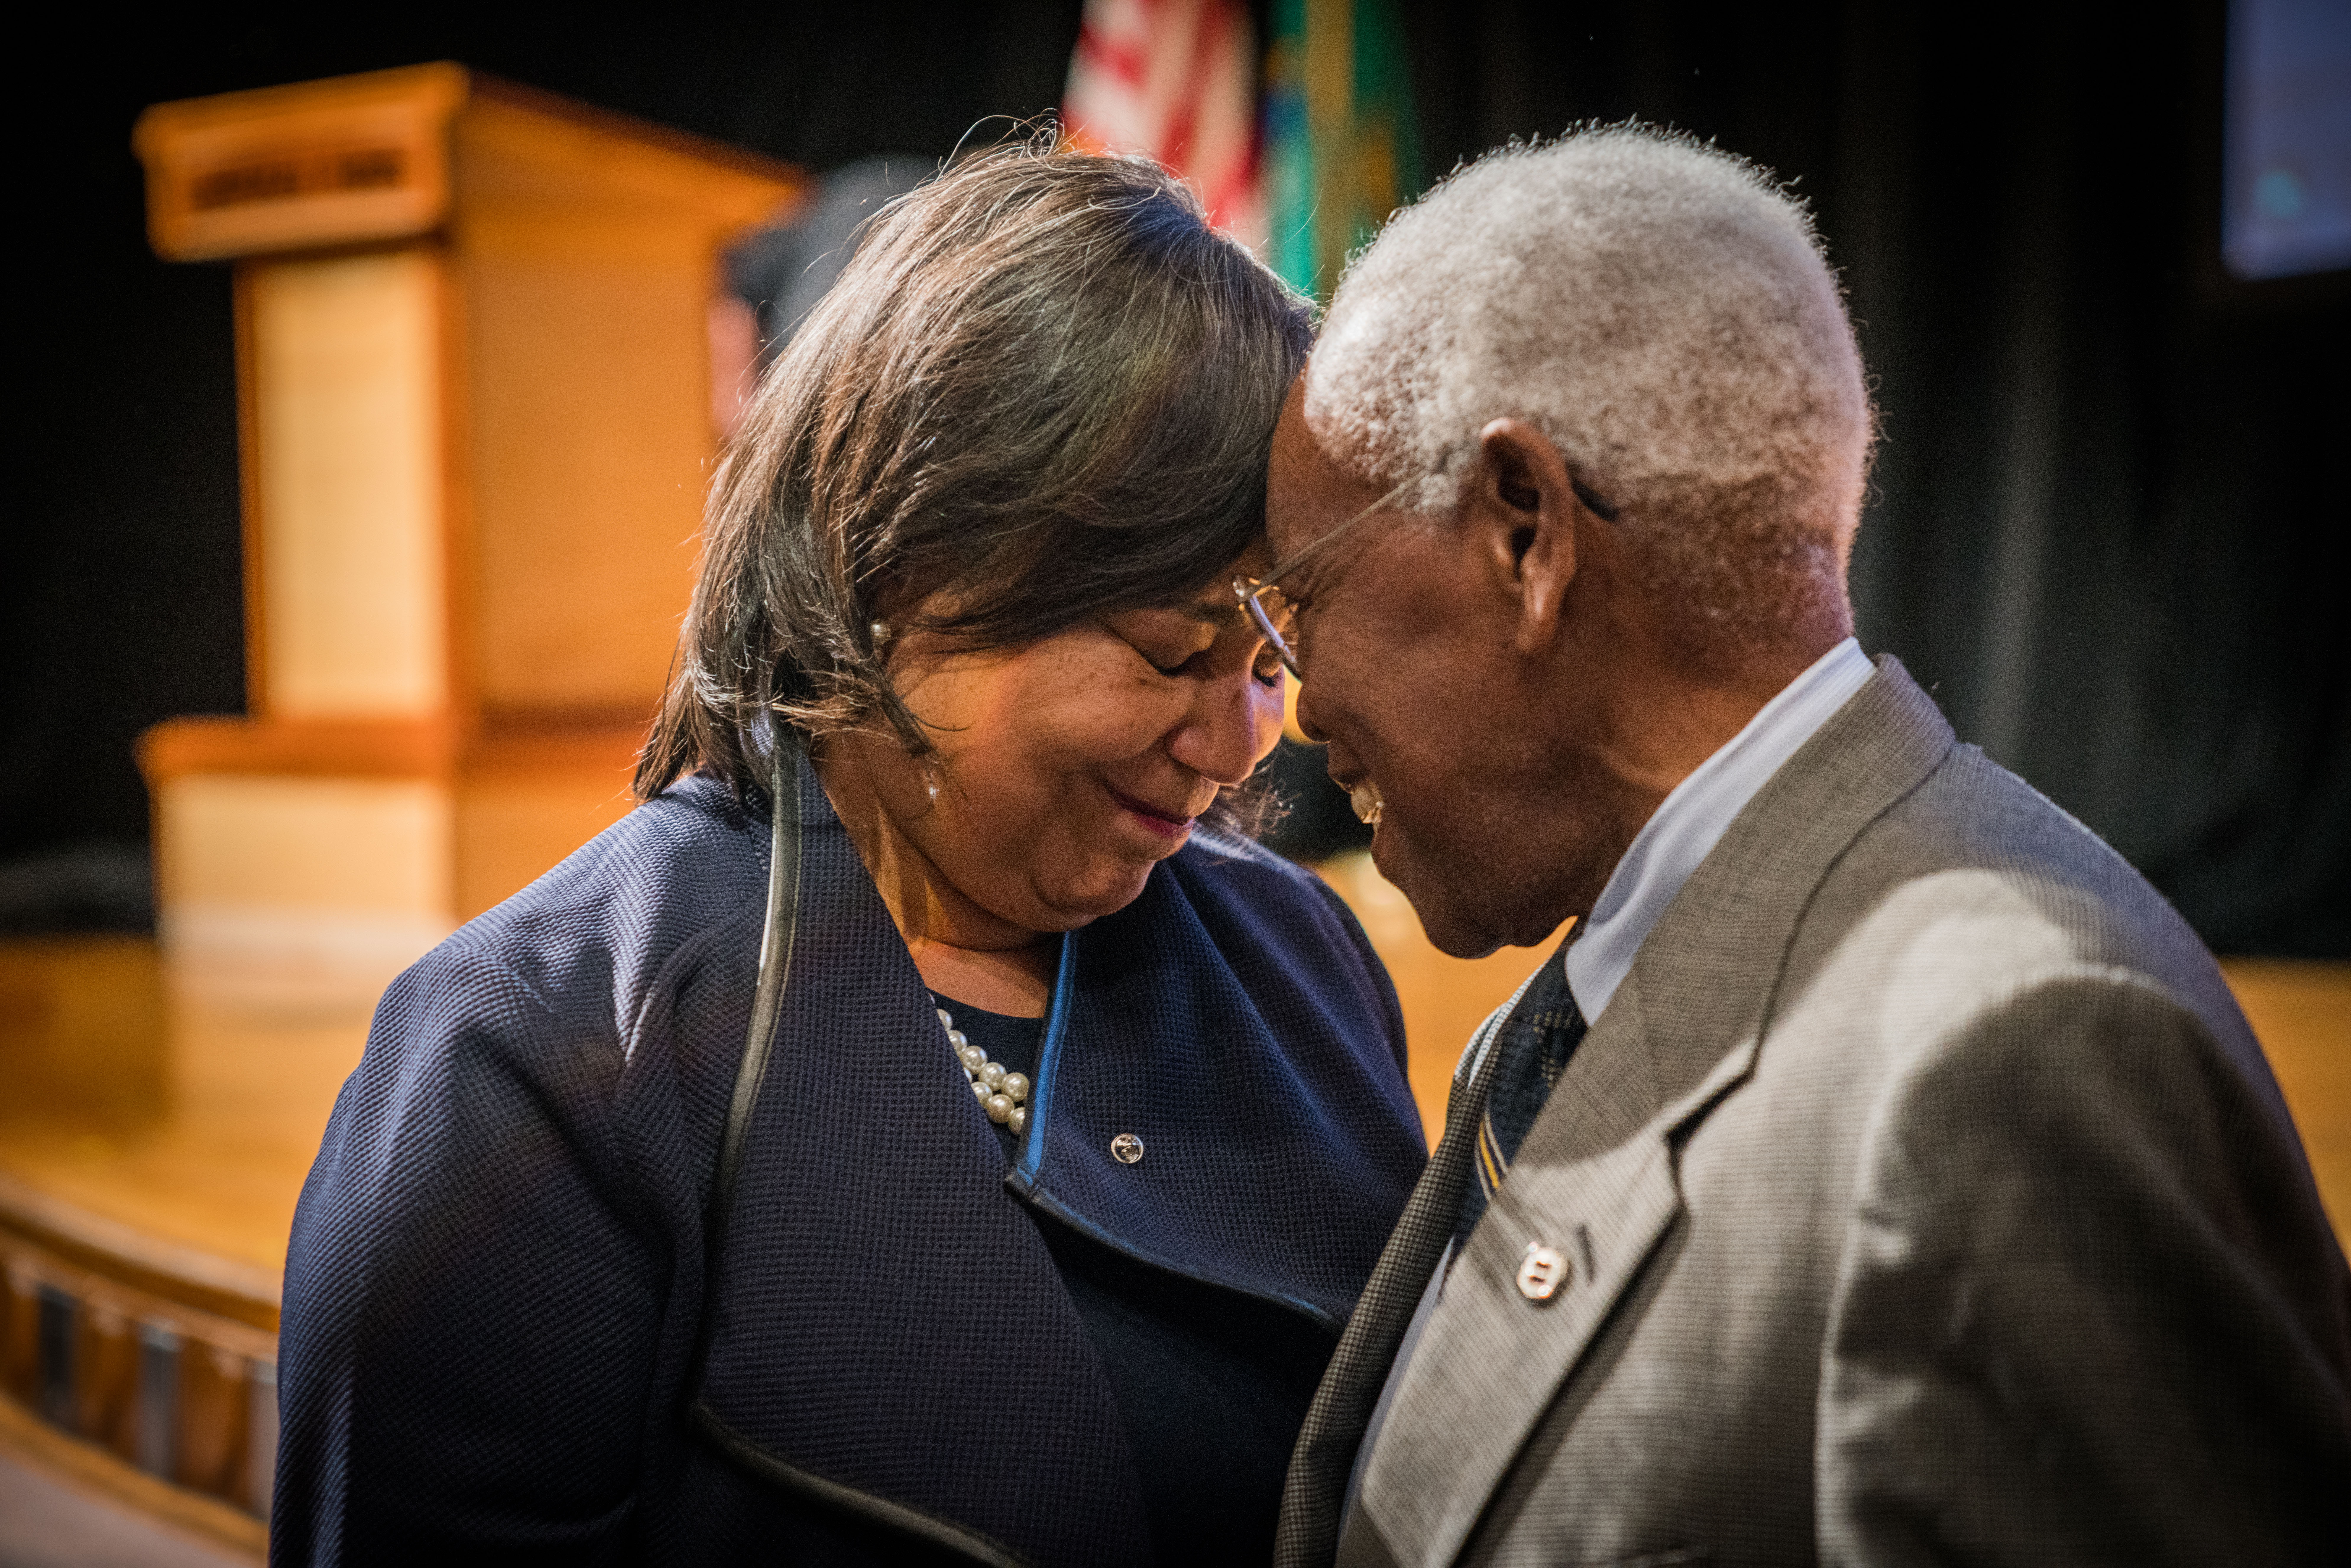 Mayor Victoria Woodards pauses to share a quiet moment with former Mayor Harold G. Moss after her first State of the City Address on April 11, 2018 at Lincoln High School in Tacoma, Washington. -- Courtesy of City of Tacoma